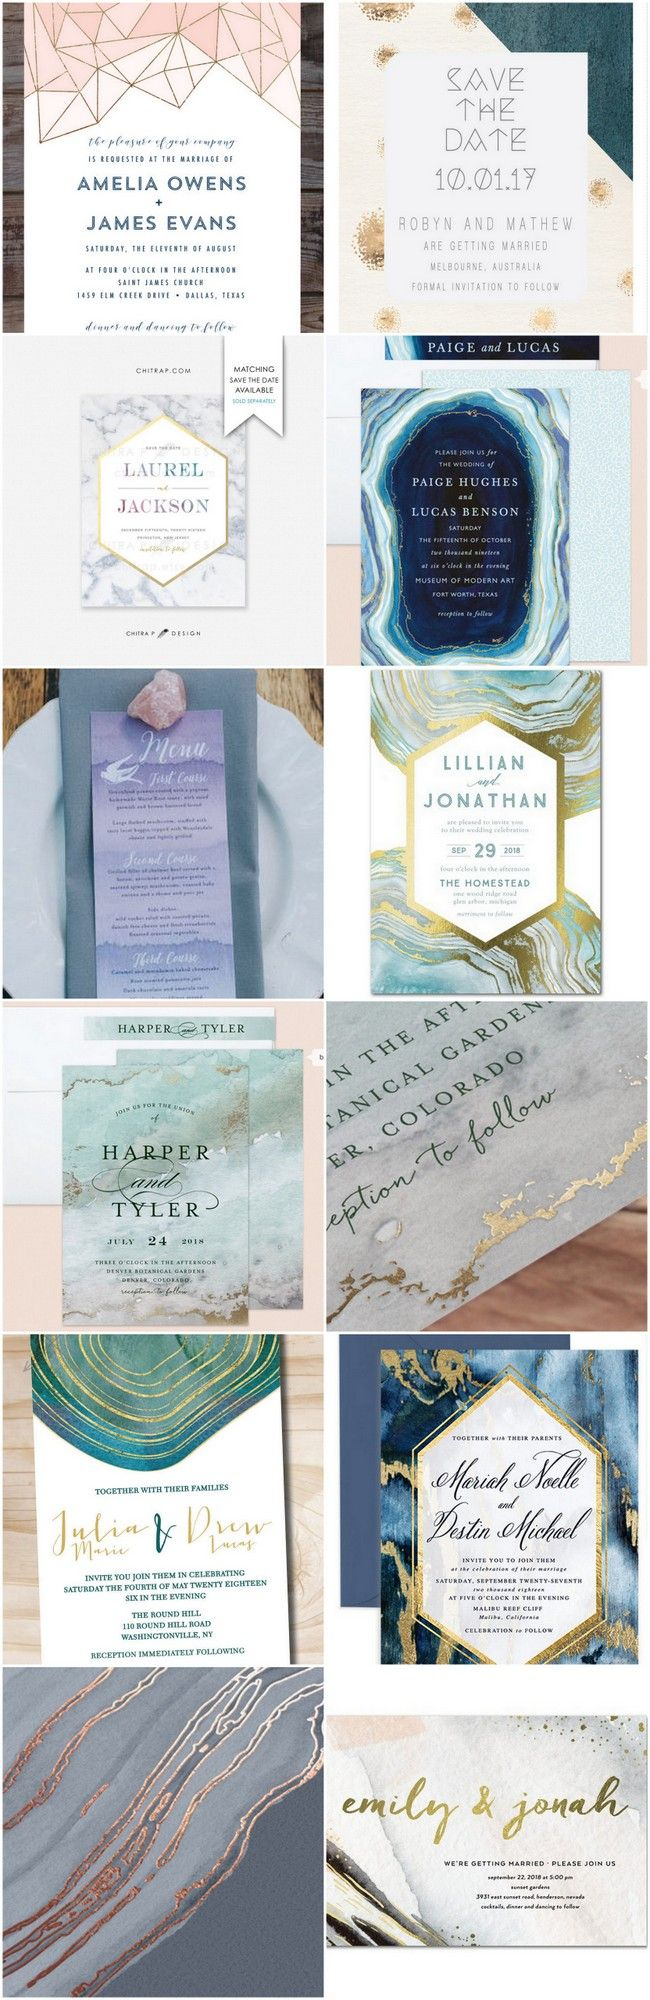 15 Geode Agate and Crystal Wedding Invitations to Rock Your World!  Combining a number of gorgeous design elements including water-colours, gold foil and geometric details, these wedding invitations are very likely to hit the spot! http://www.confettidaydreams.com/geode-agate-and-crystal-wedding-invitations/